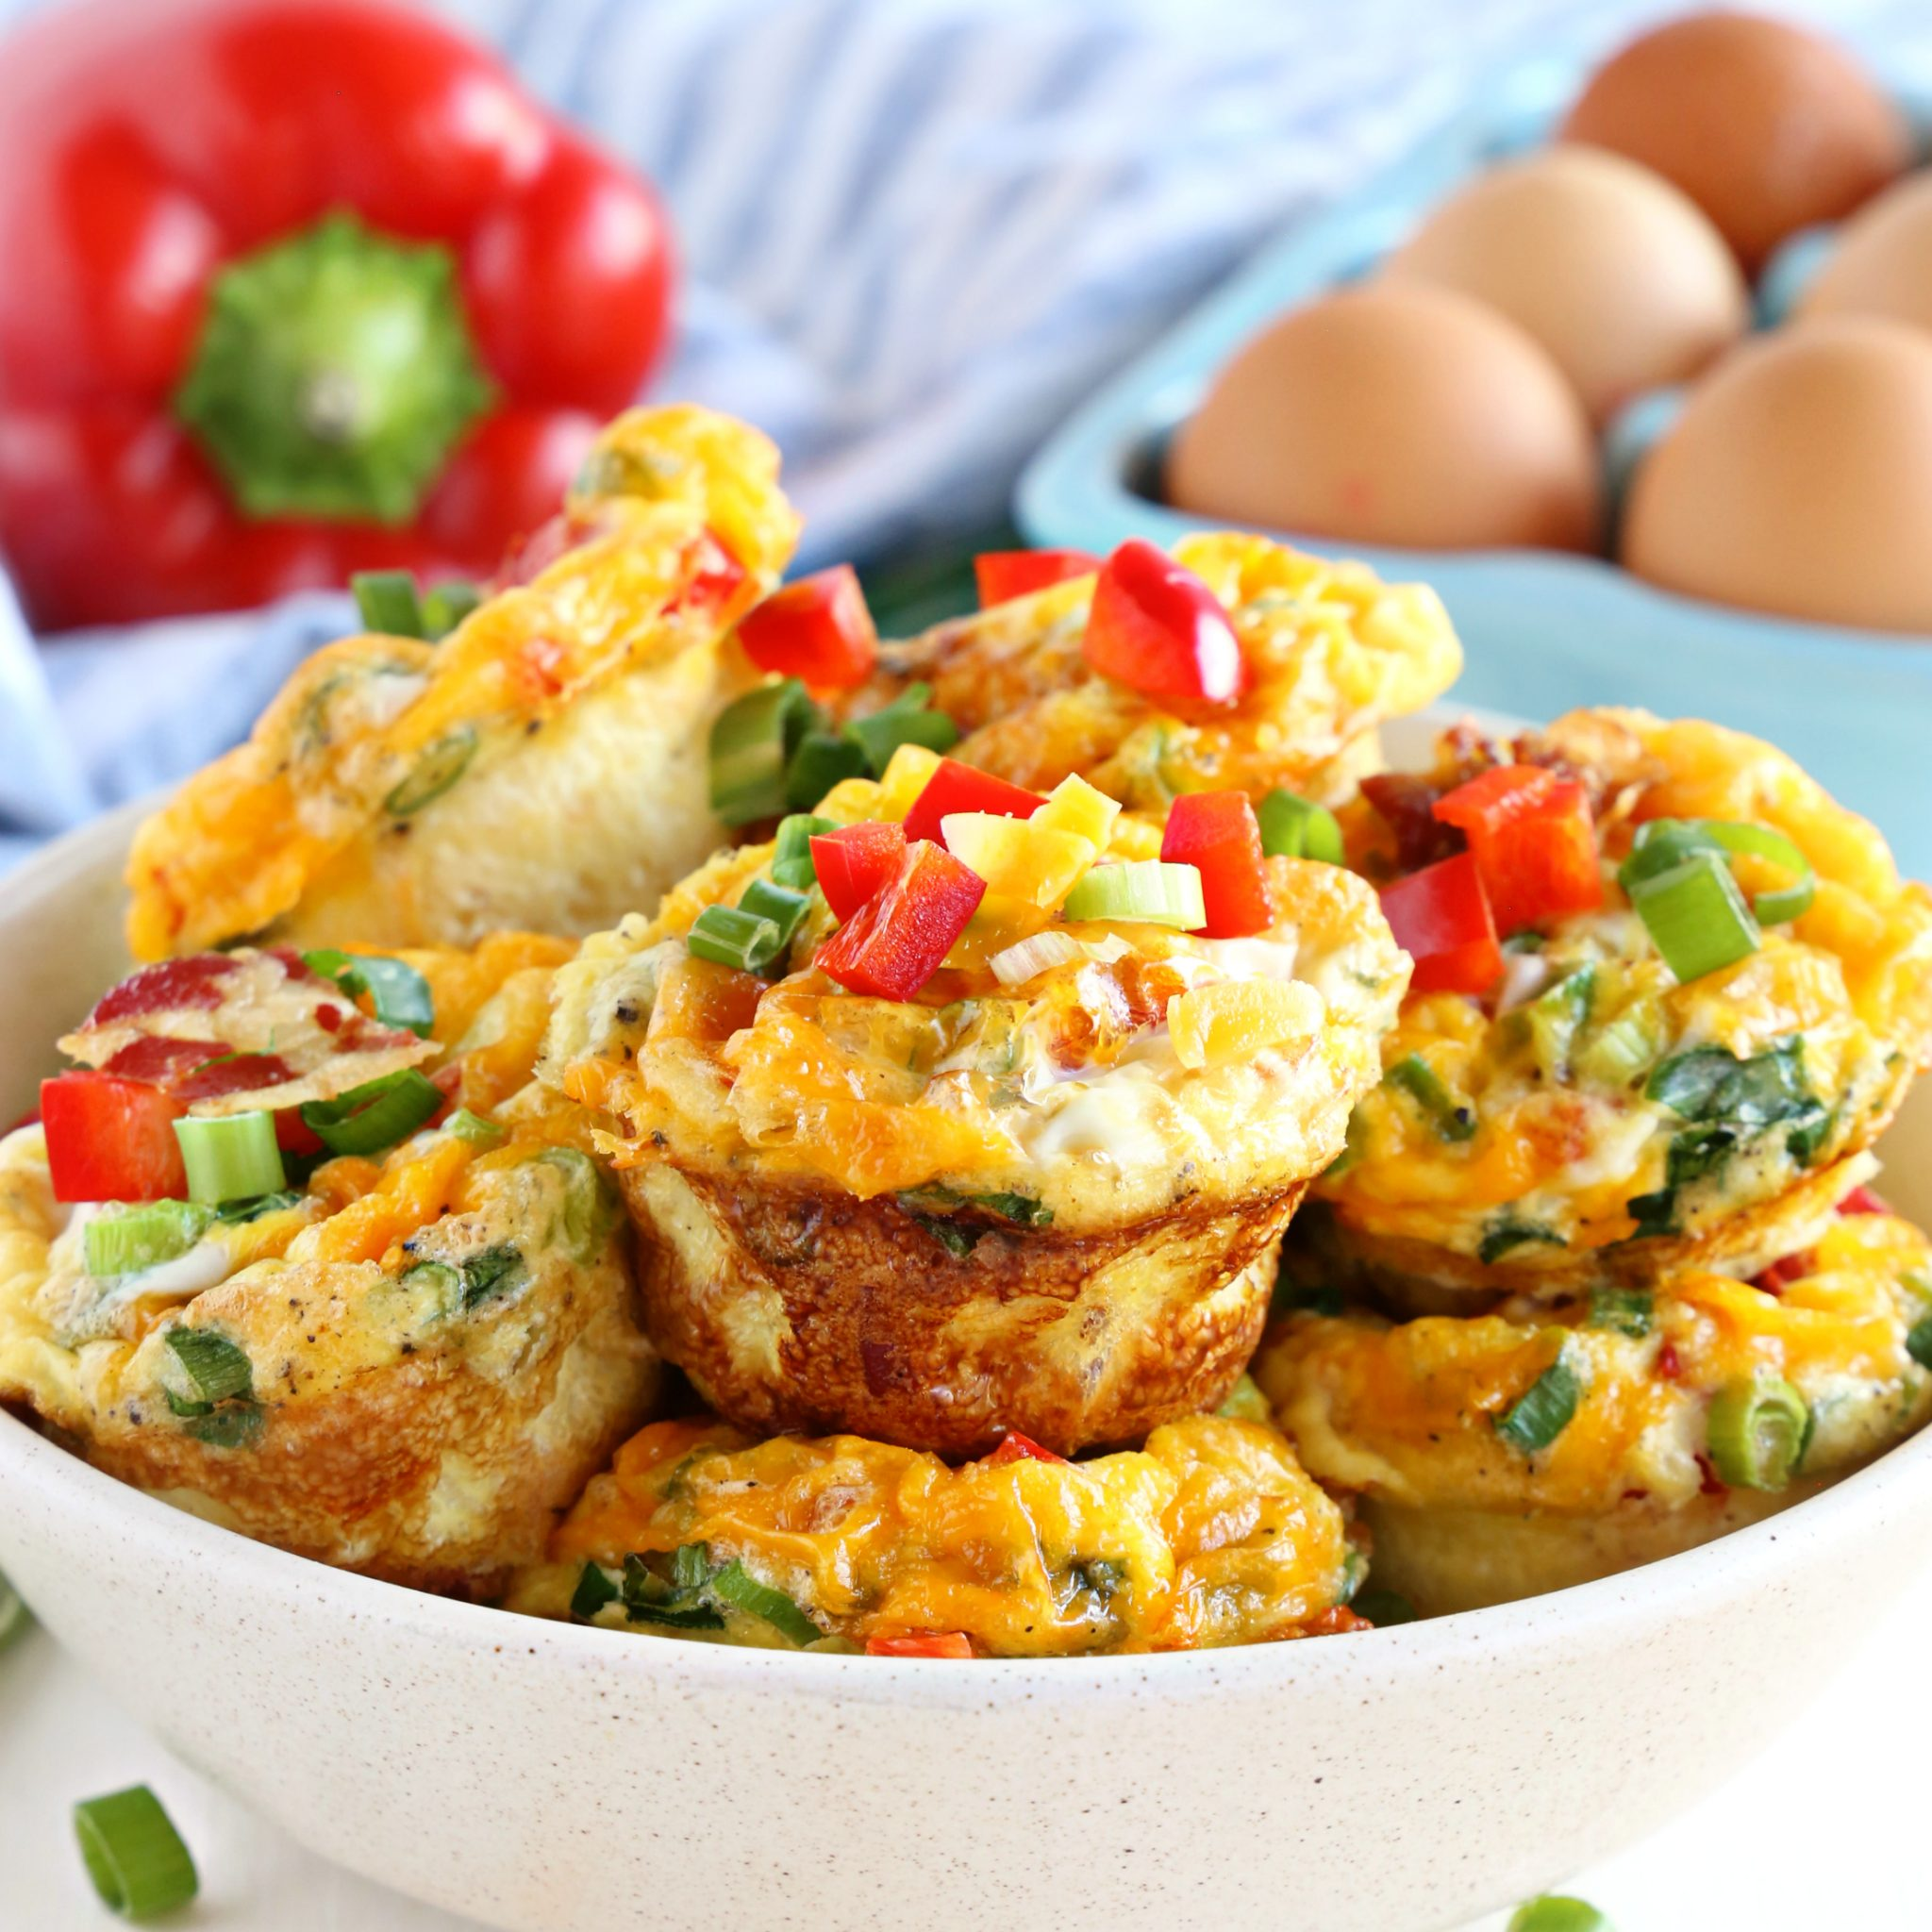 Bacon And Egg Breakfast Muffins Meal Prep Recipe The Busy Baker